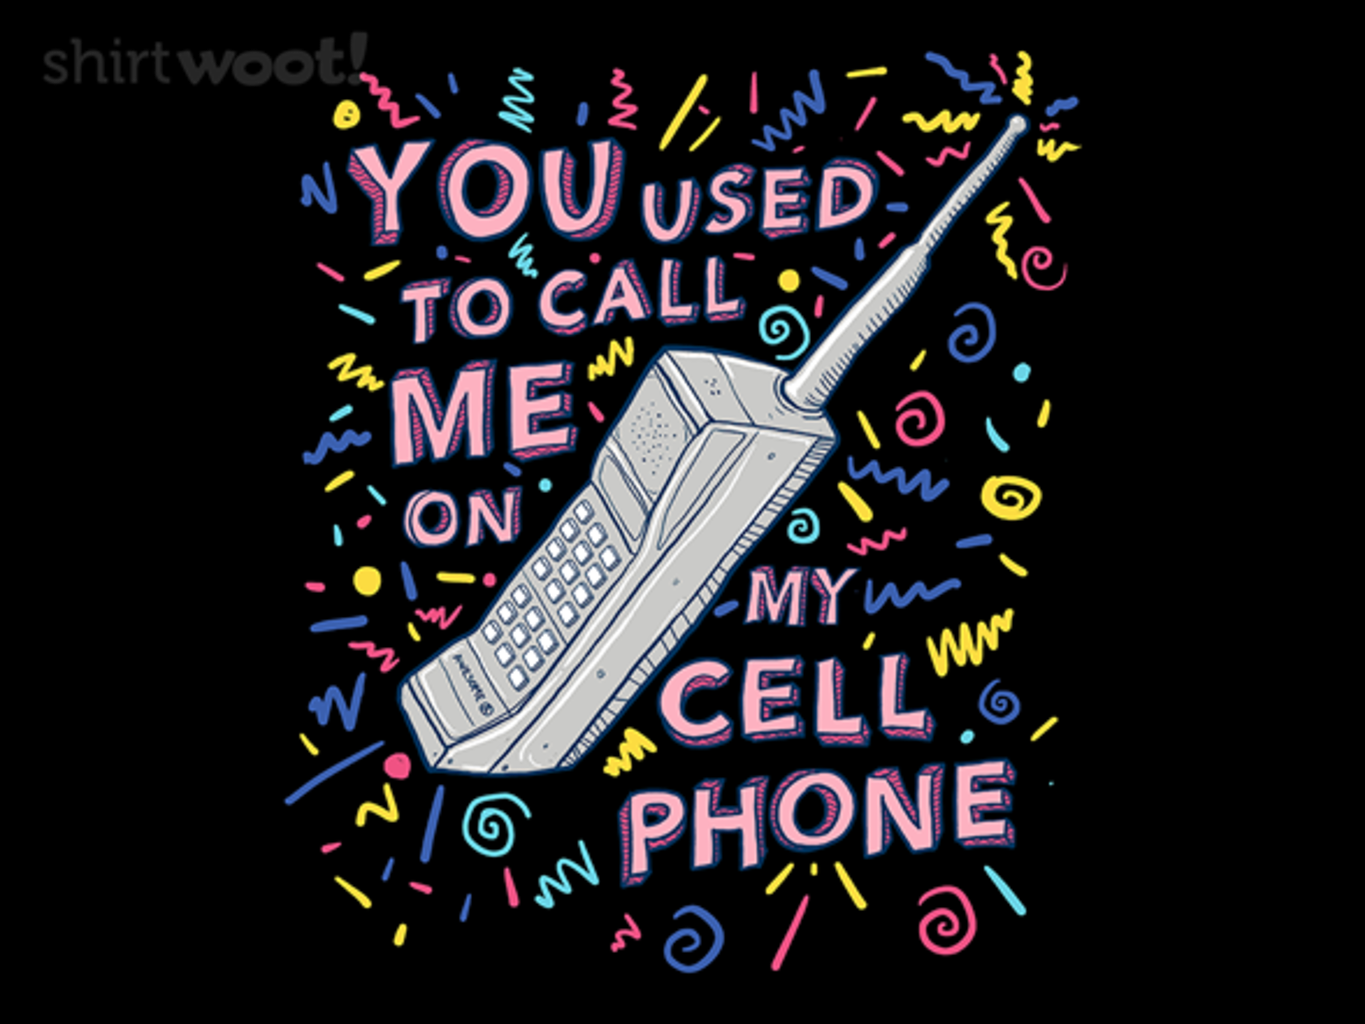 Woot!: You Used to Call Me...